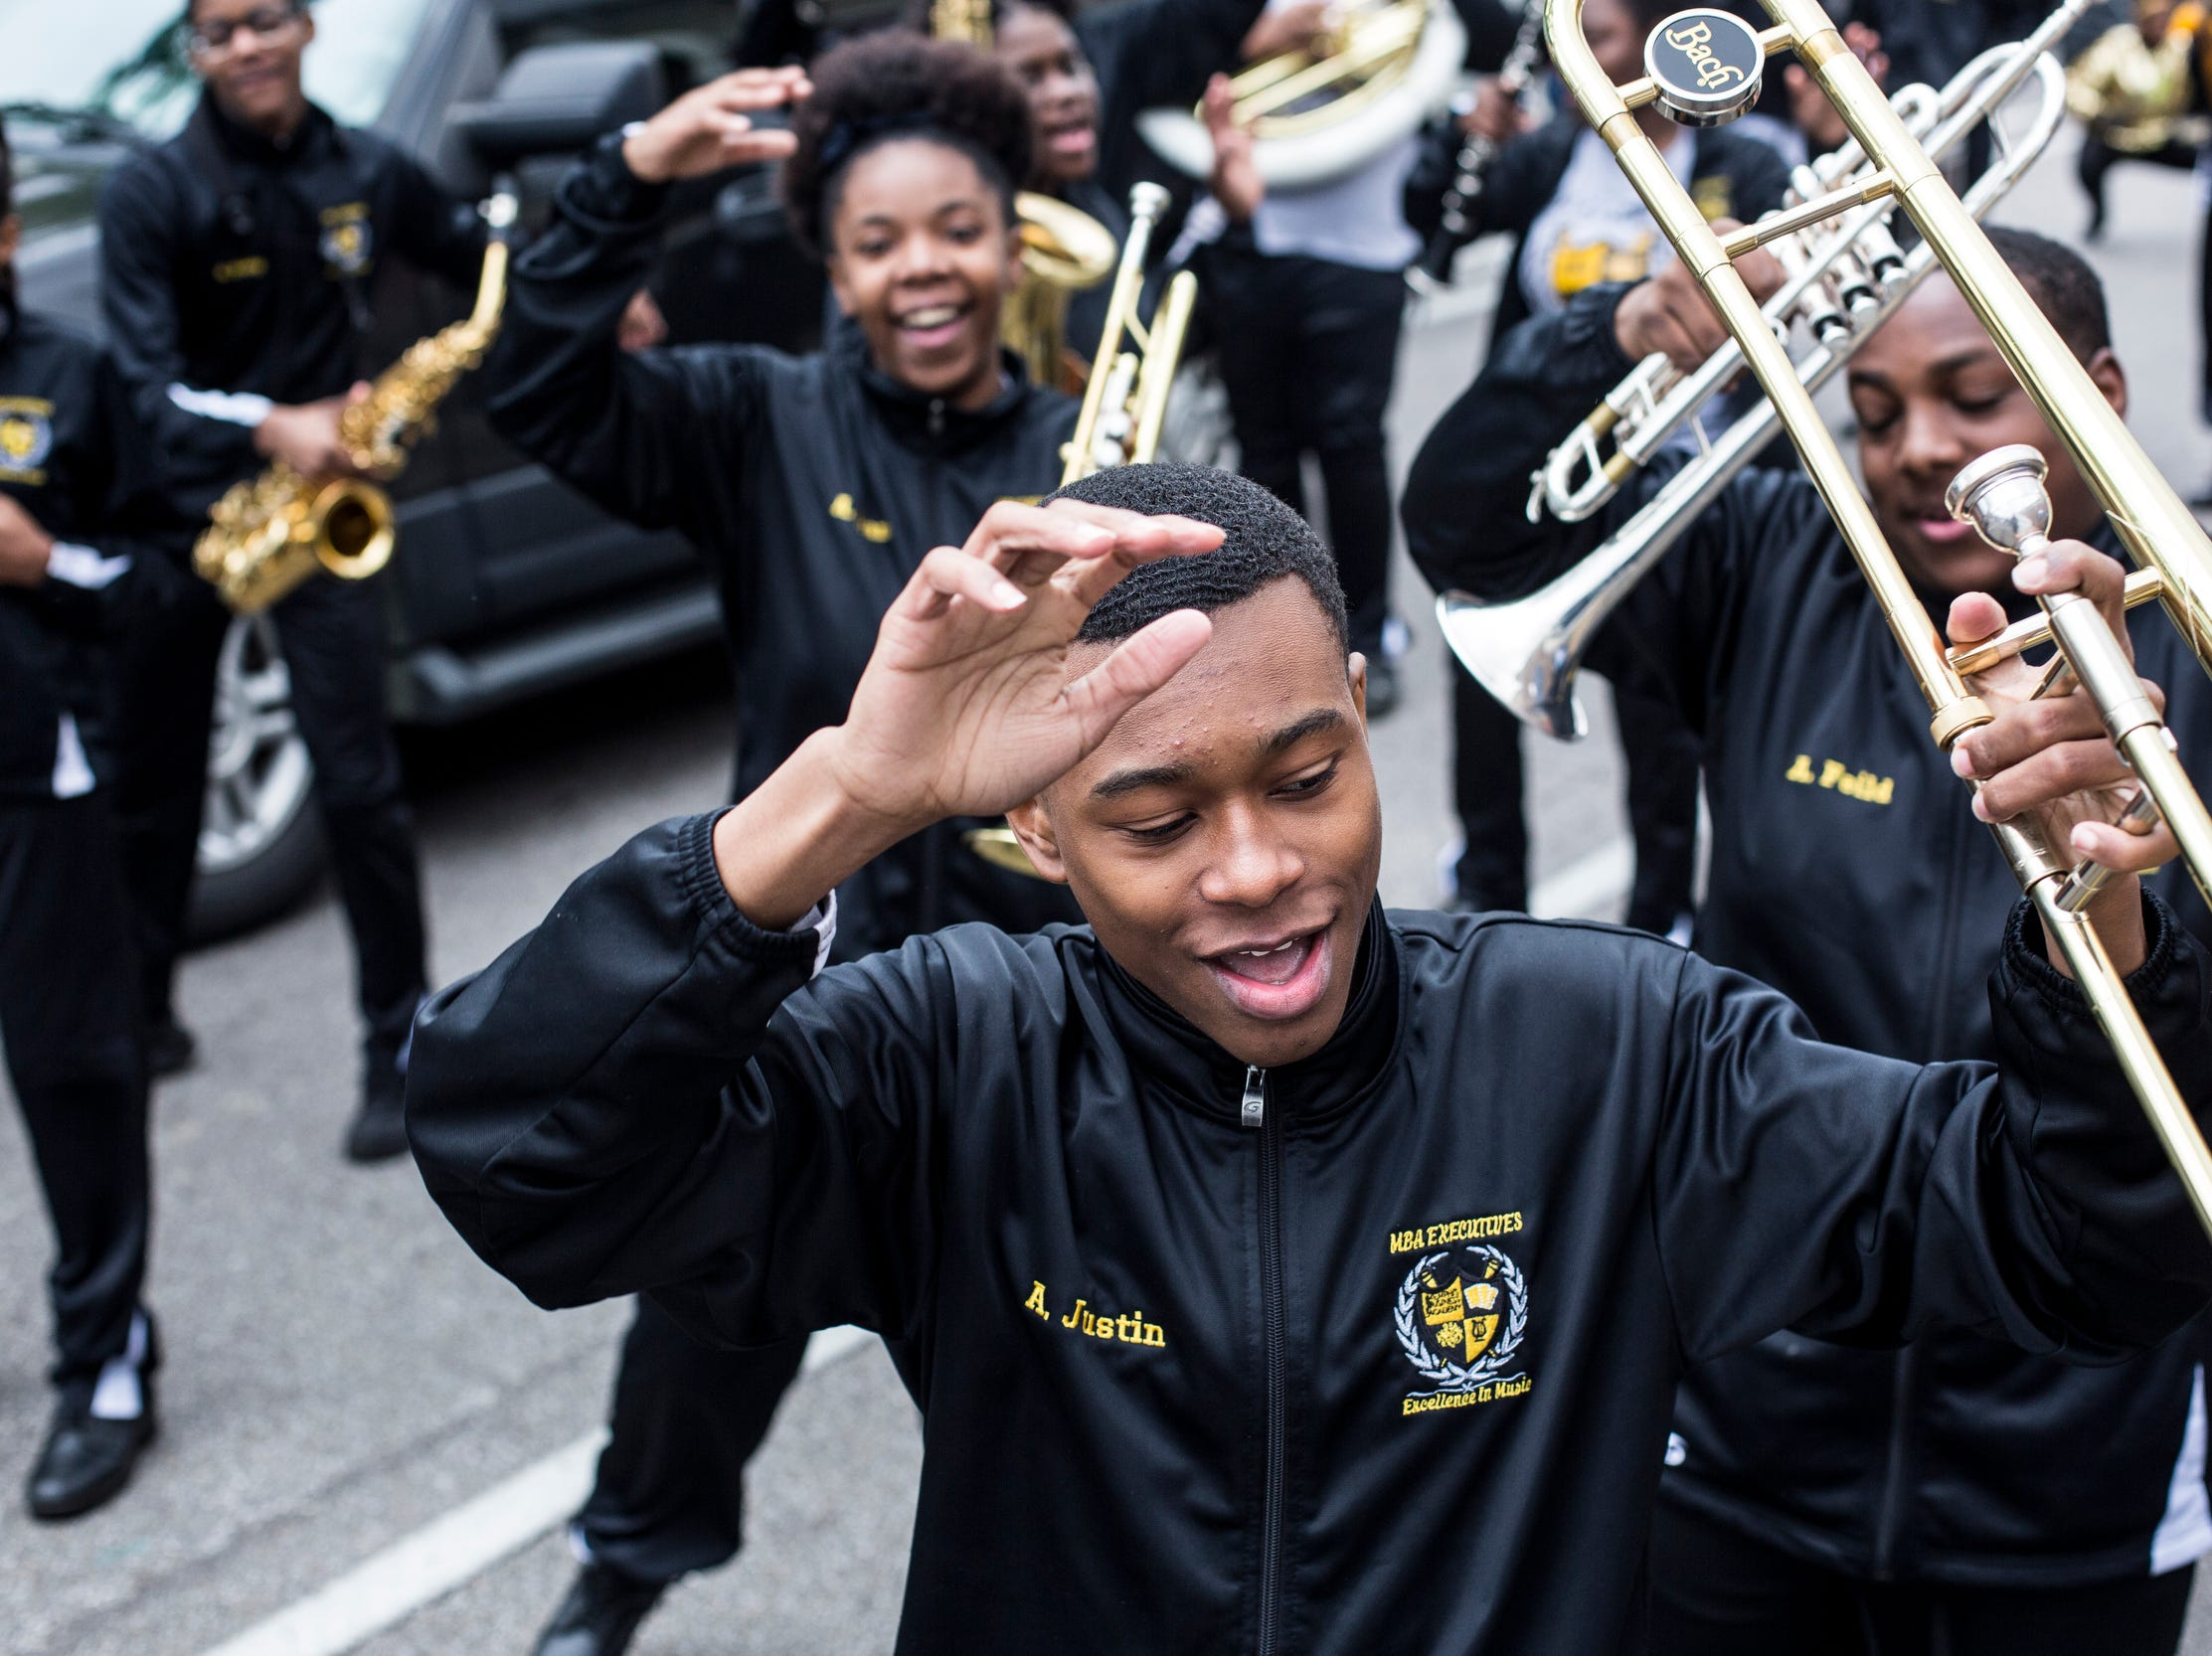 Justin Askew dances along with the Memphis Business Academy marching band before the start of the Africa in April International Diversity Parade on Friday, April 19, 2019. The 33rd annual Africa in April Cultural Awareness Festival runs through April 21 at Robert Church Park.